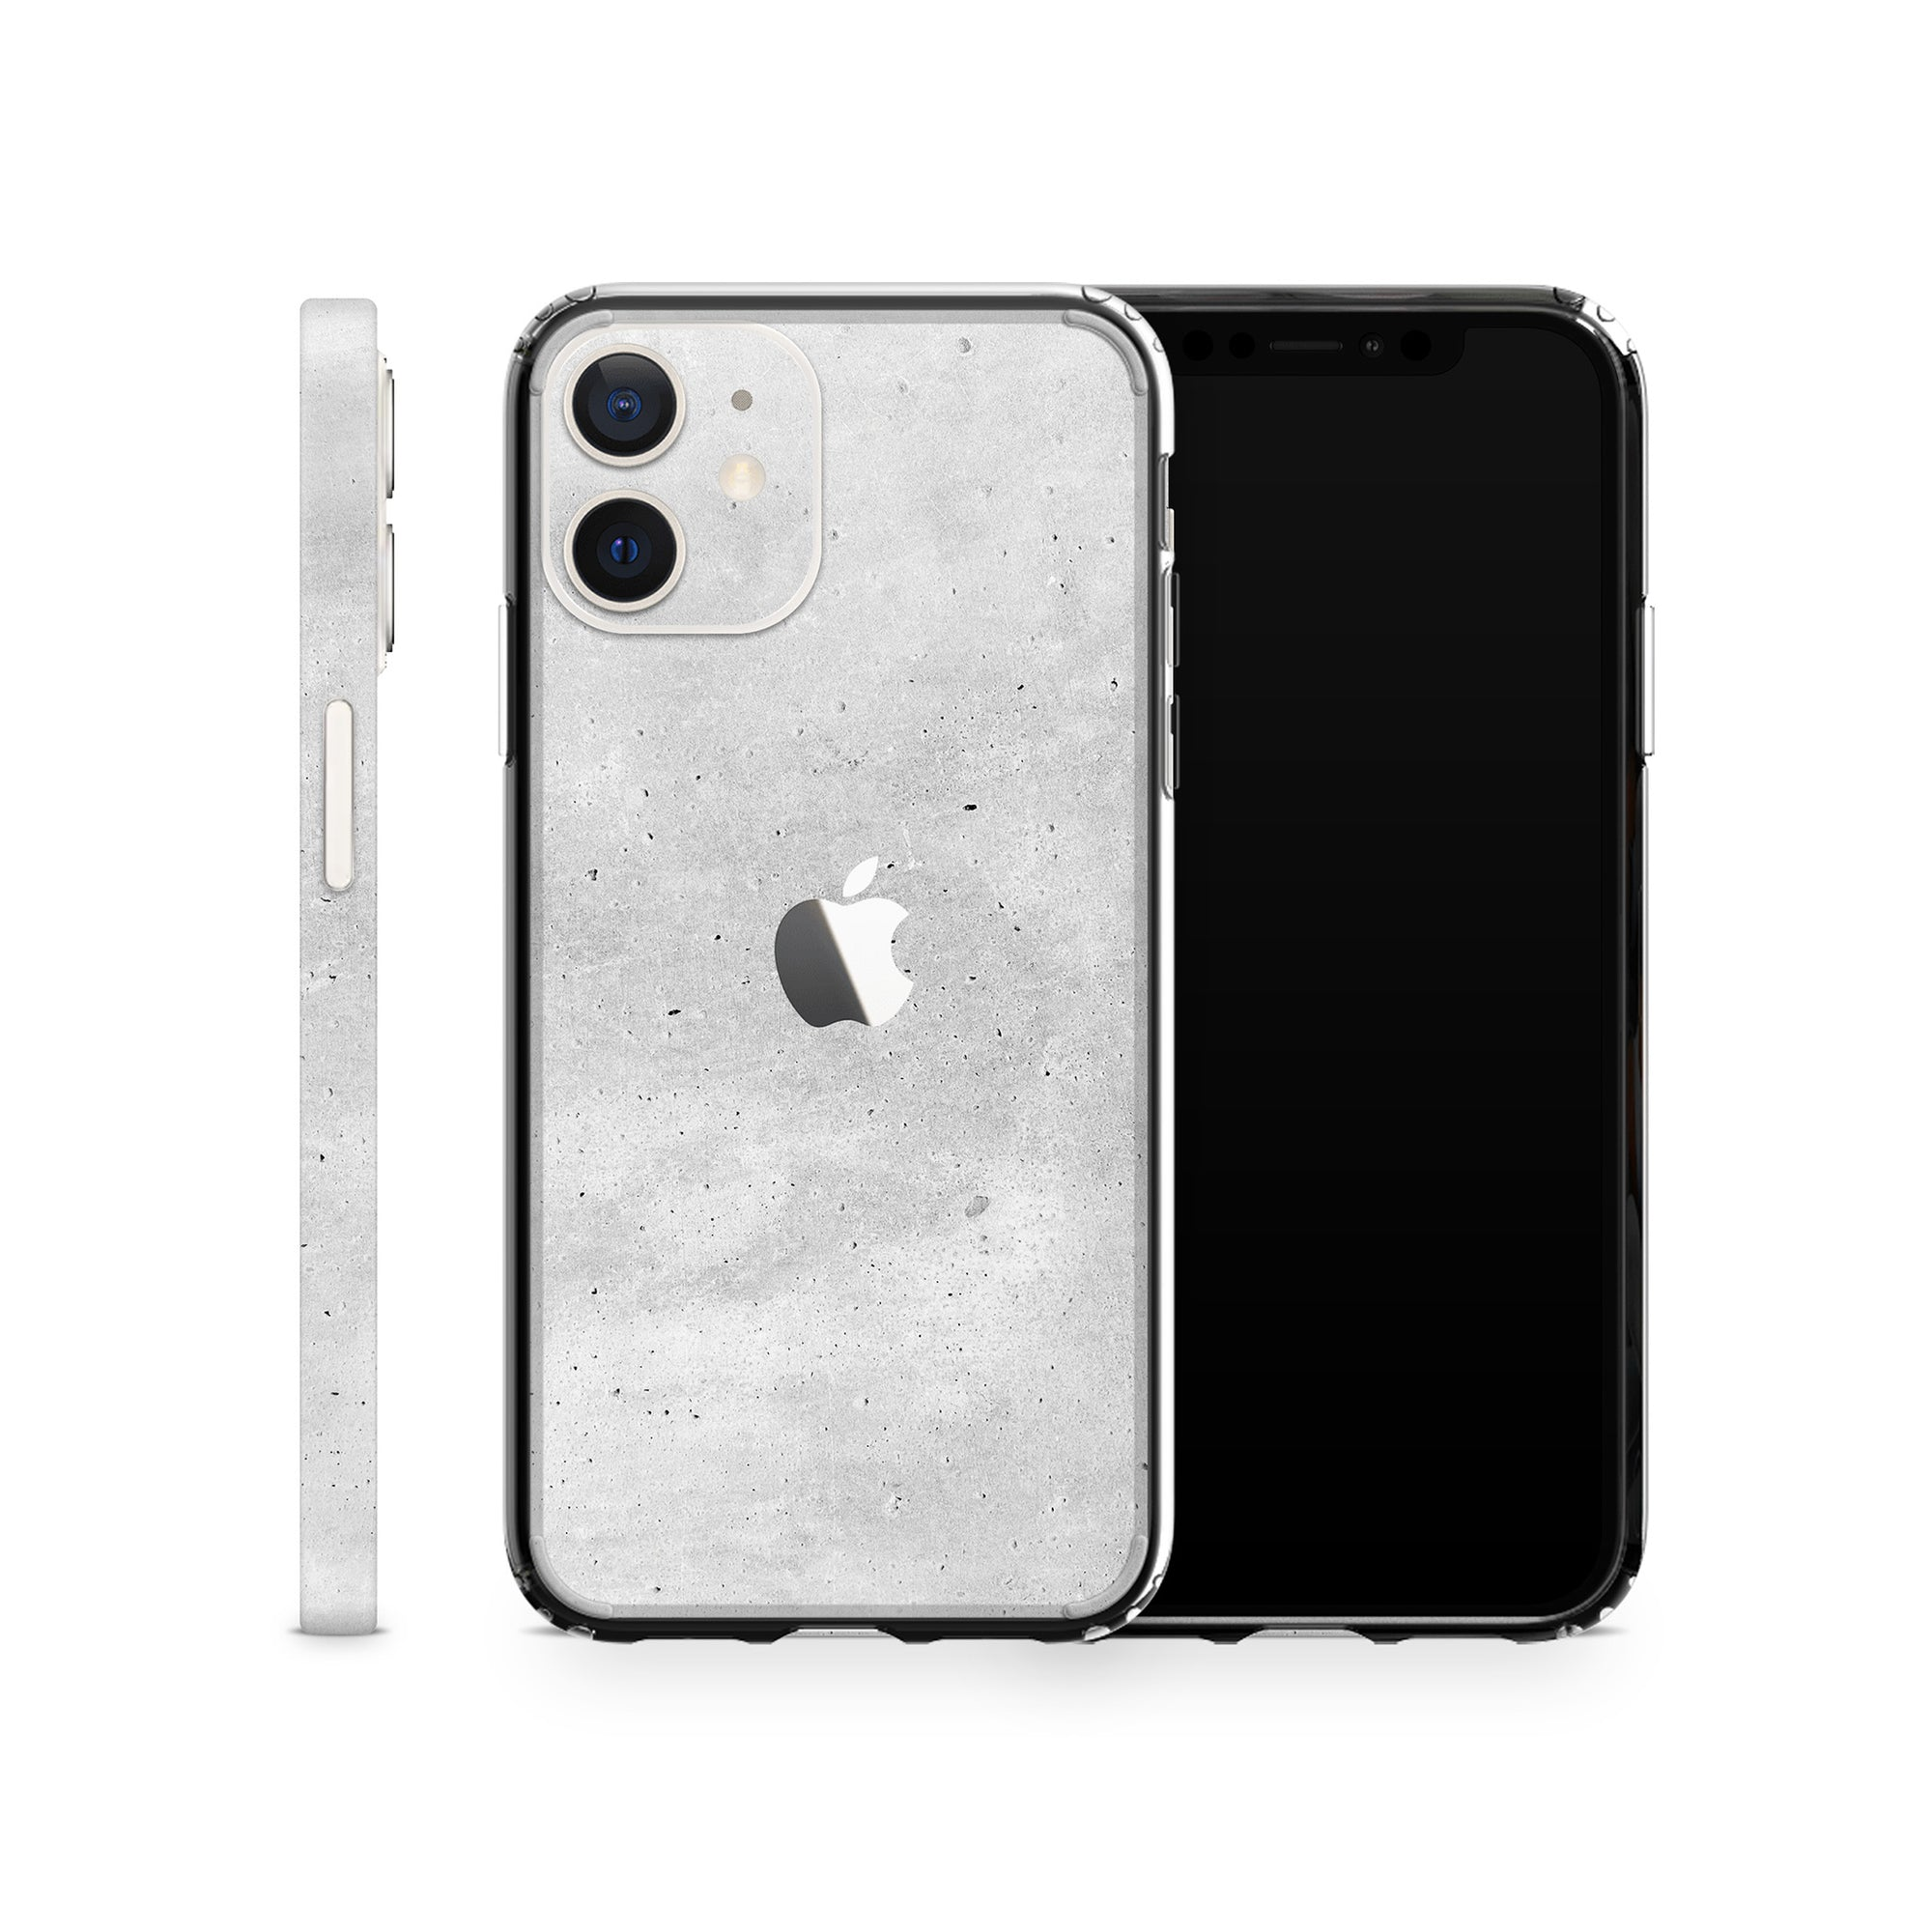 Concrete iPhone 12 Skin + Case